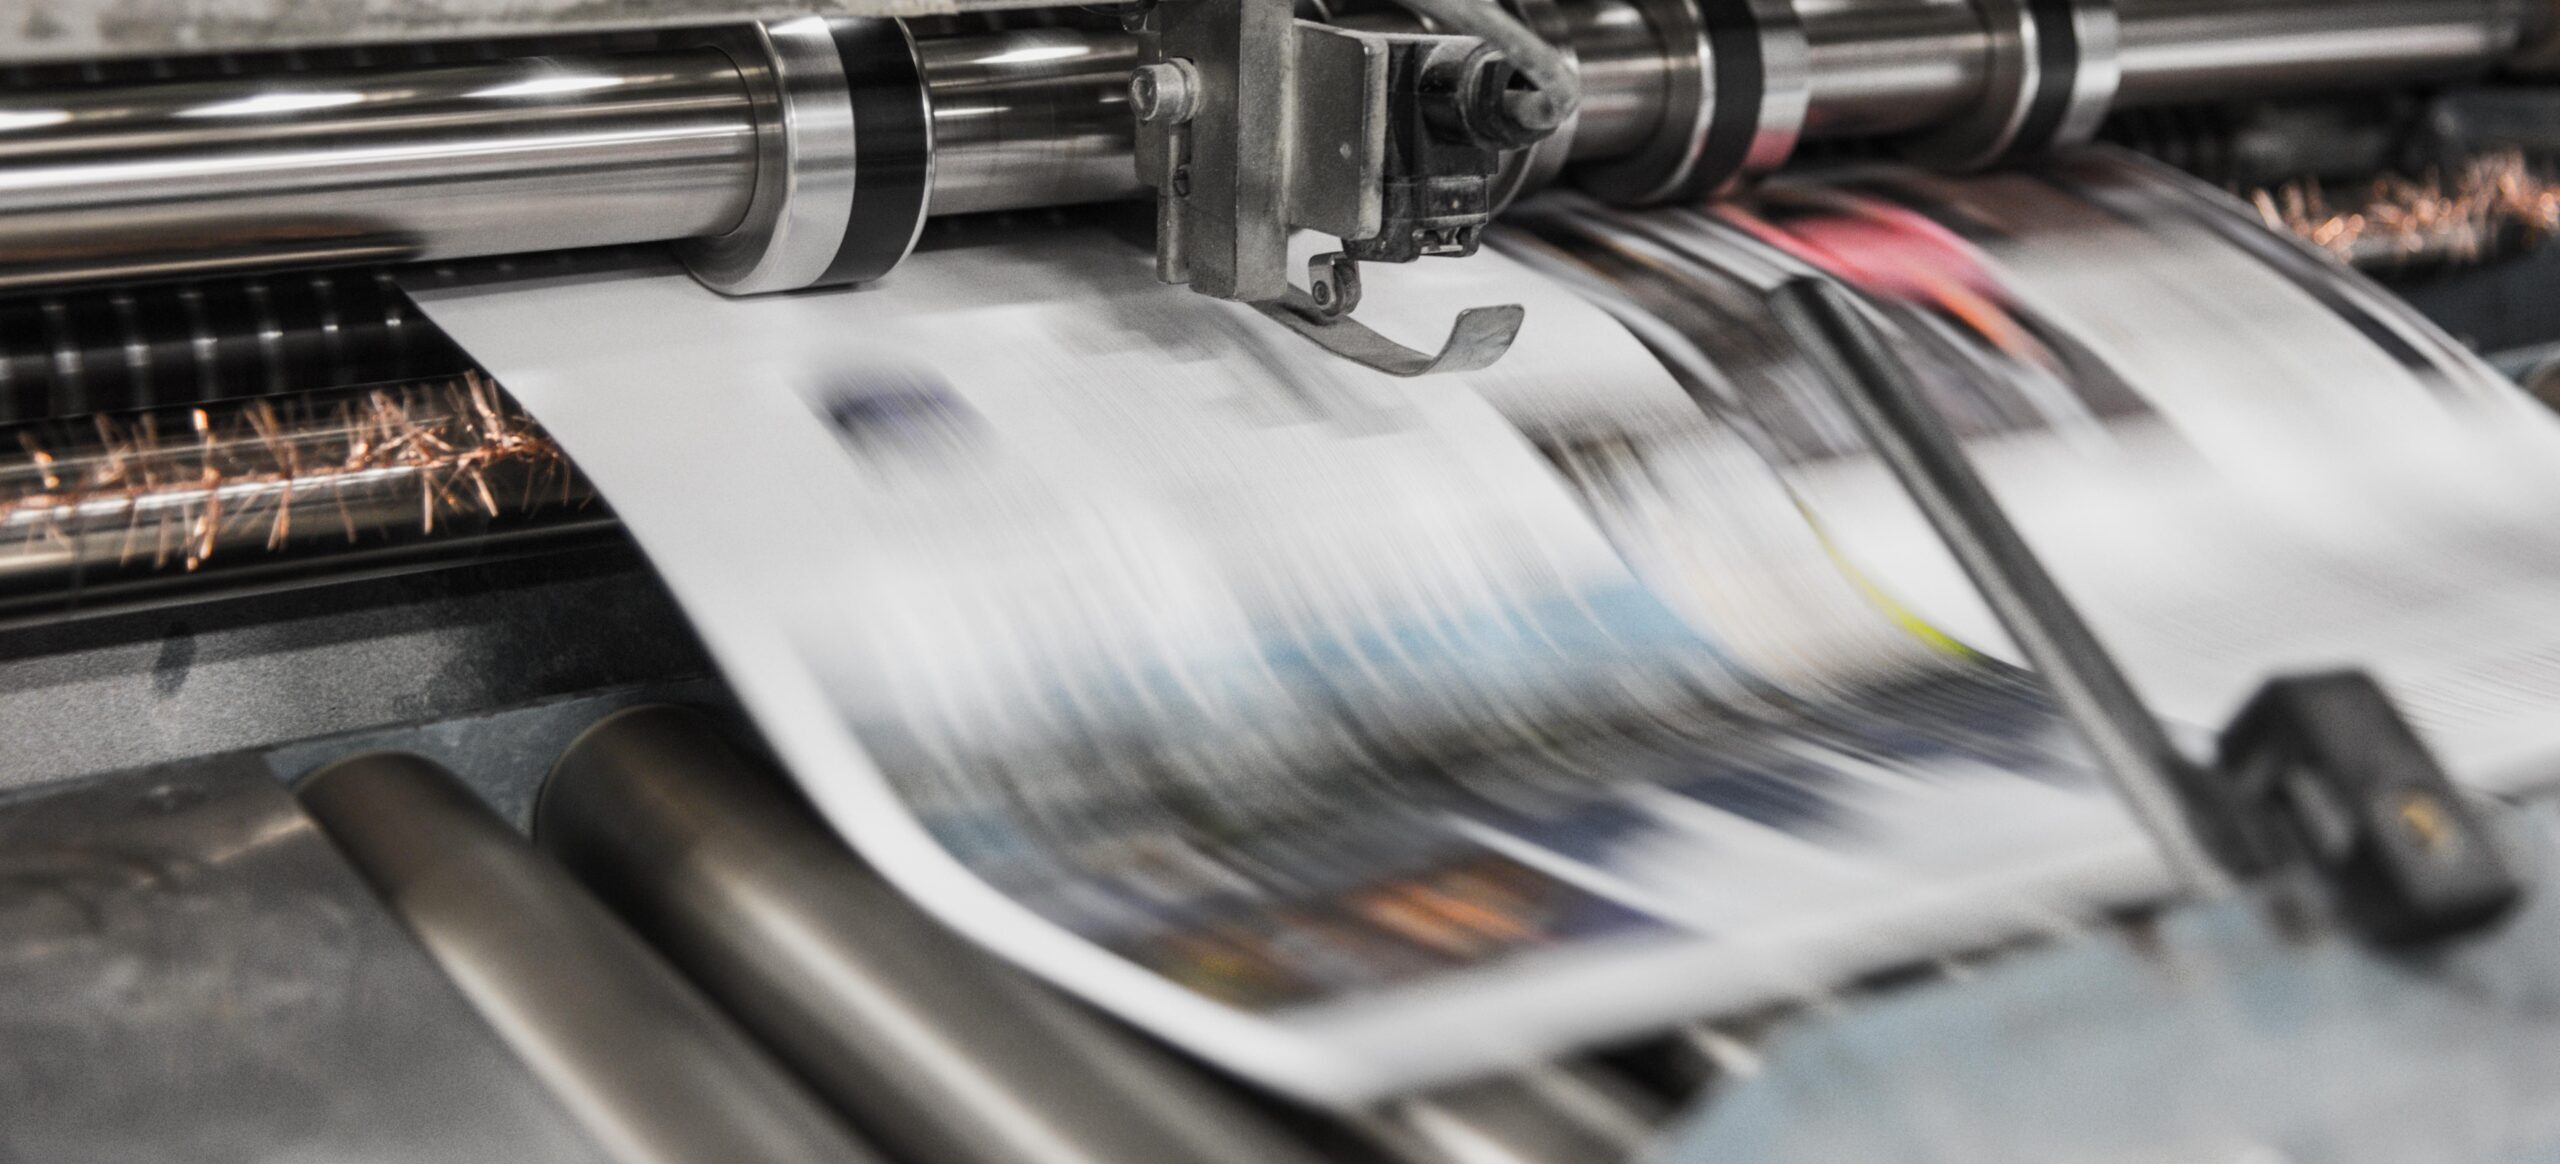 Newspaper printing press - Rachel Writes blog 'I'm a small business, do I need to write press releases?'